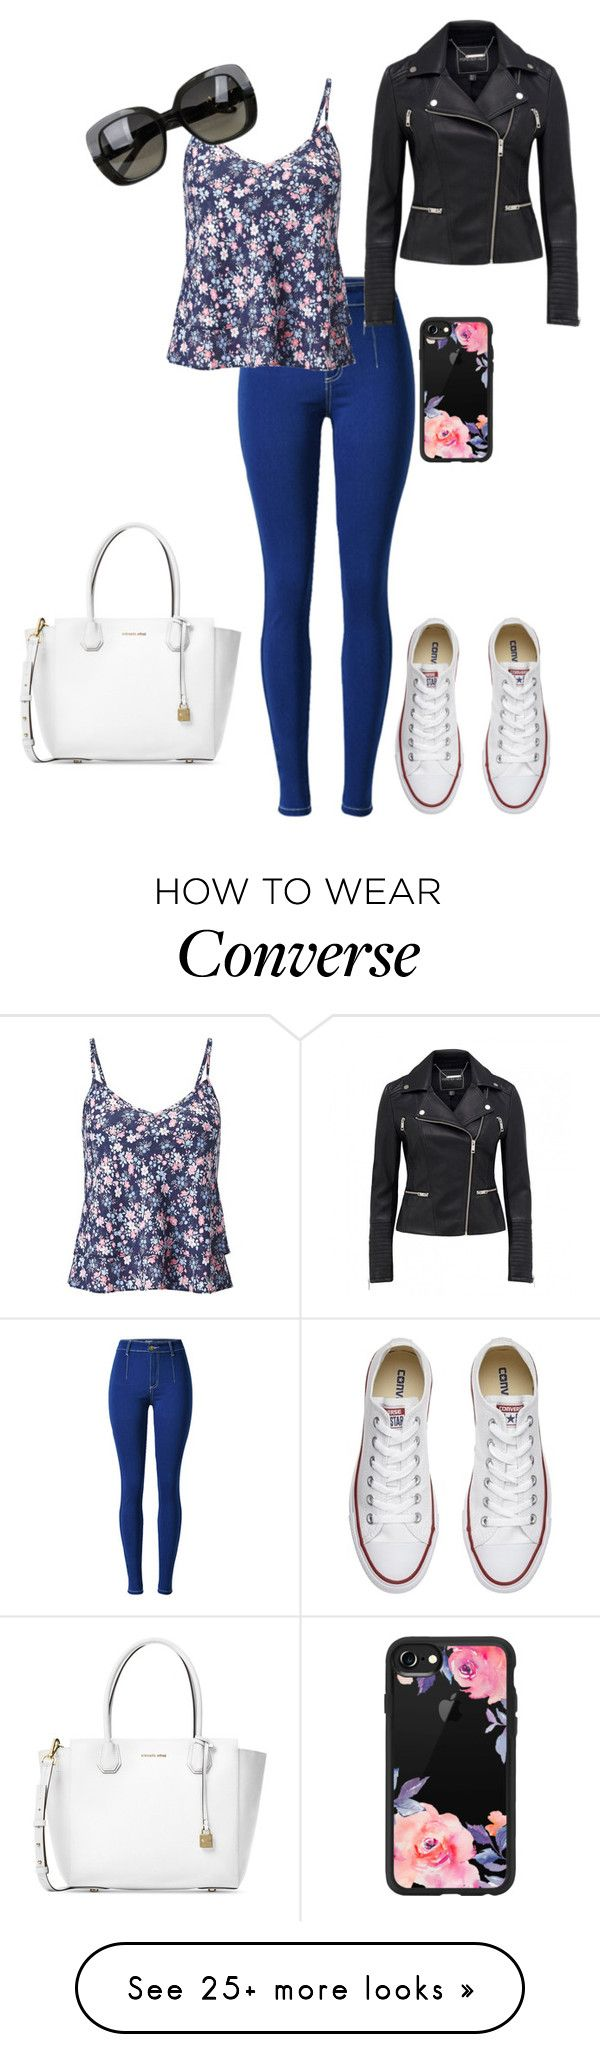 """Untitled #31"" by katepenna on Polyvore featuring Miss Selfridge, Converse, Bottega Veneta, Michael Kors and Casetify"